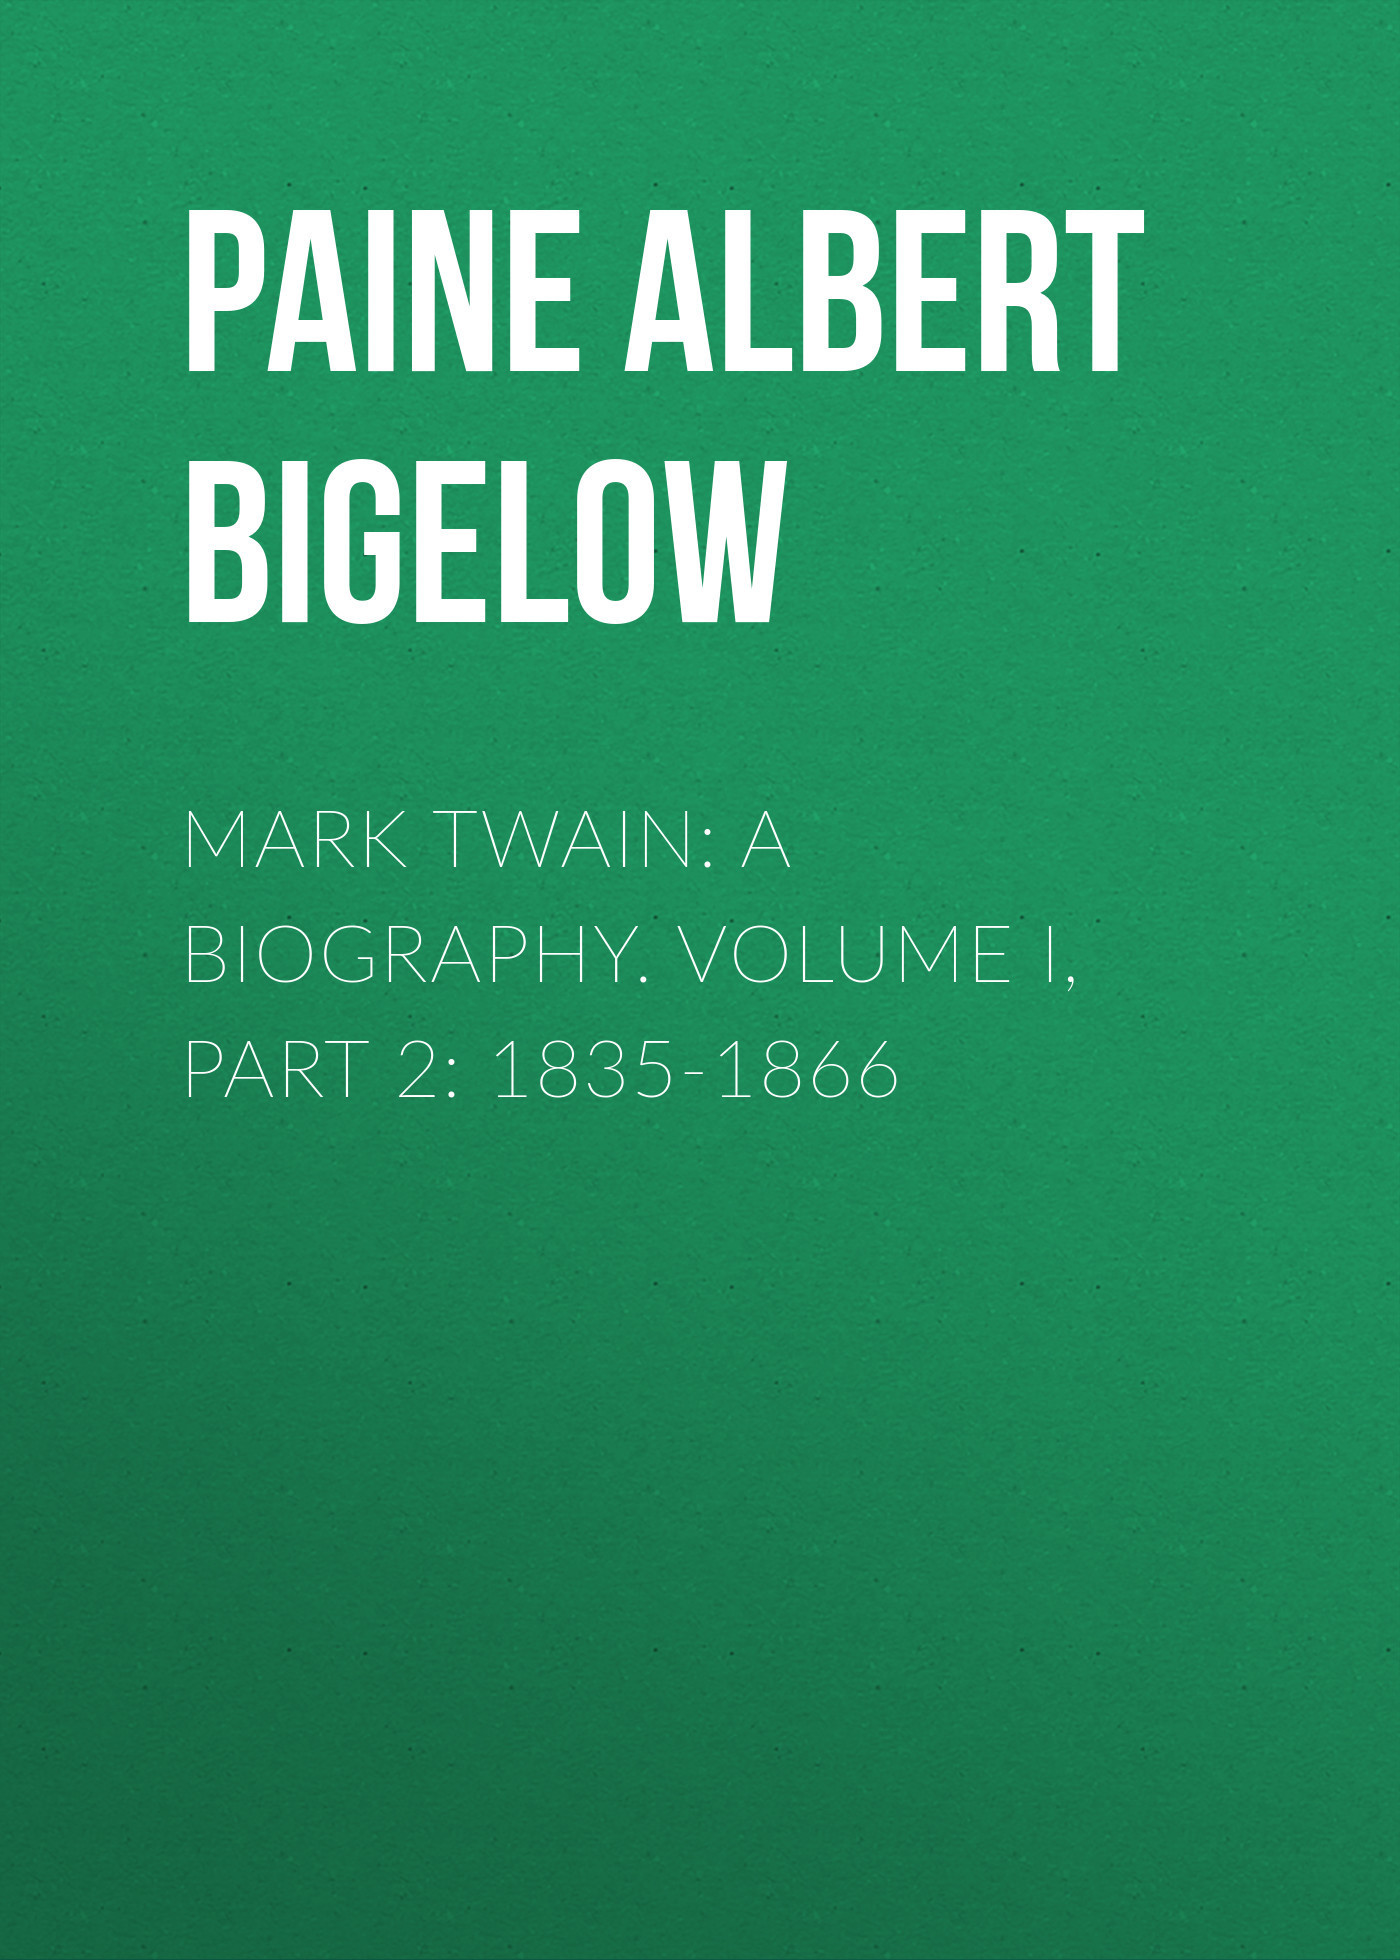 Paine Albert Bigelow Mark Twain: A Biography. Volume I, Part 2: 1835-1866 модестов в сост katherine mansfield mark twain